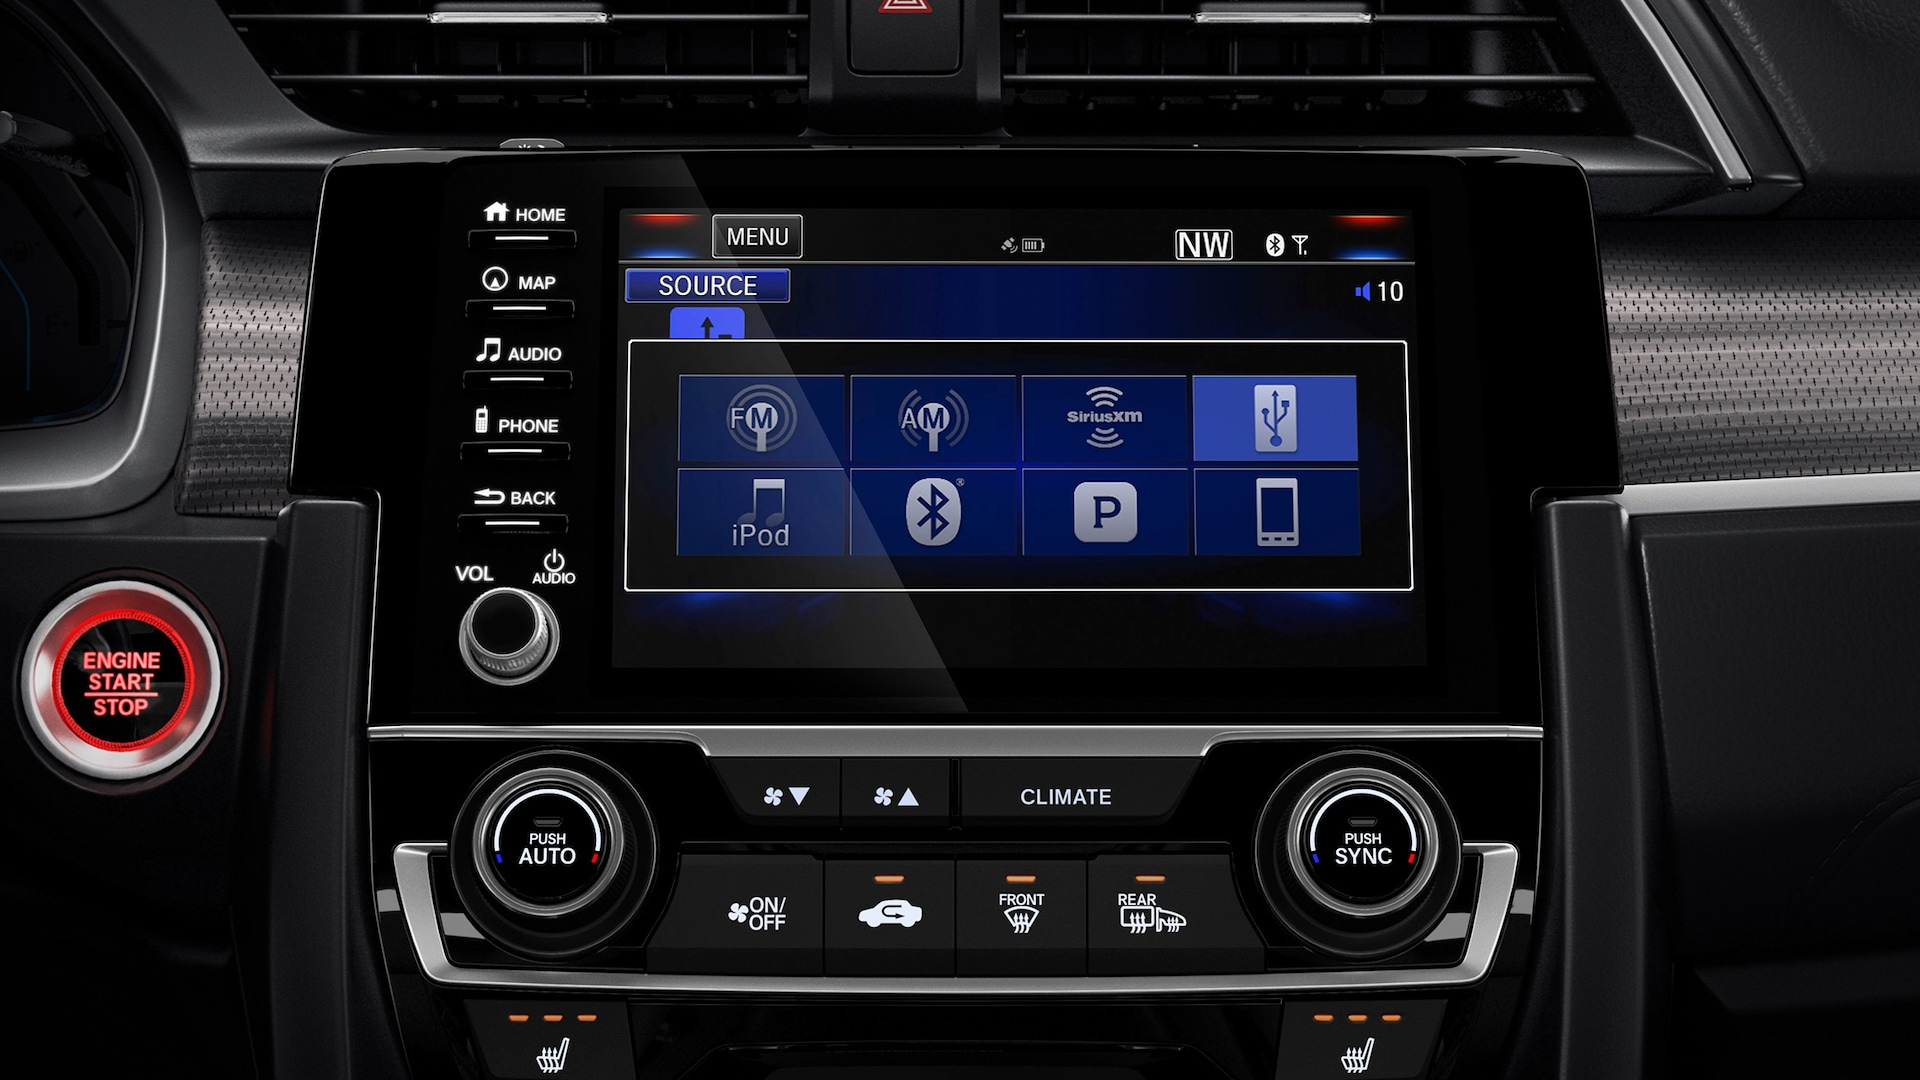 7-inch Display Audio touch-screen detail in the 2020 Honda Civic Coupe.